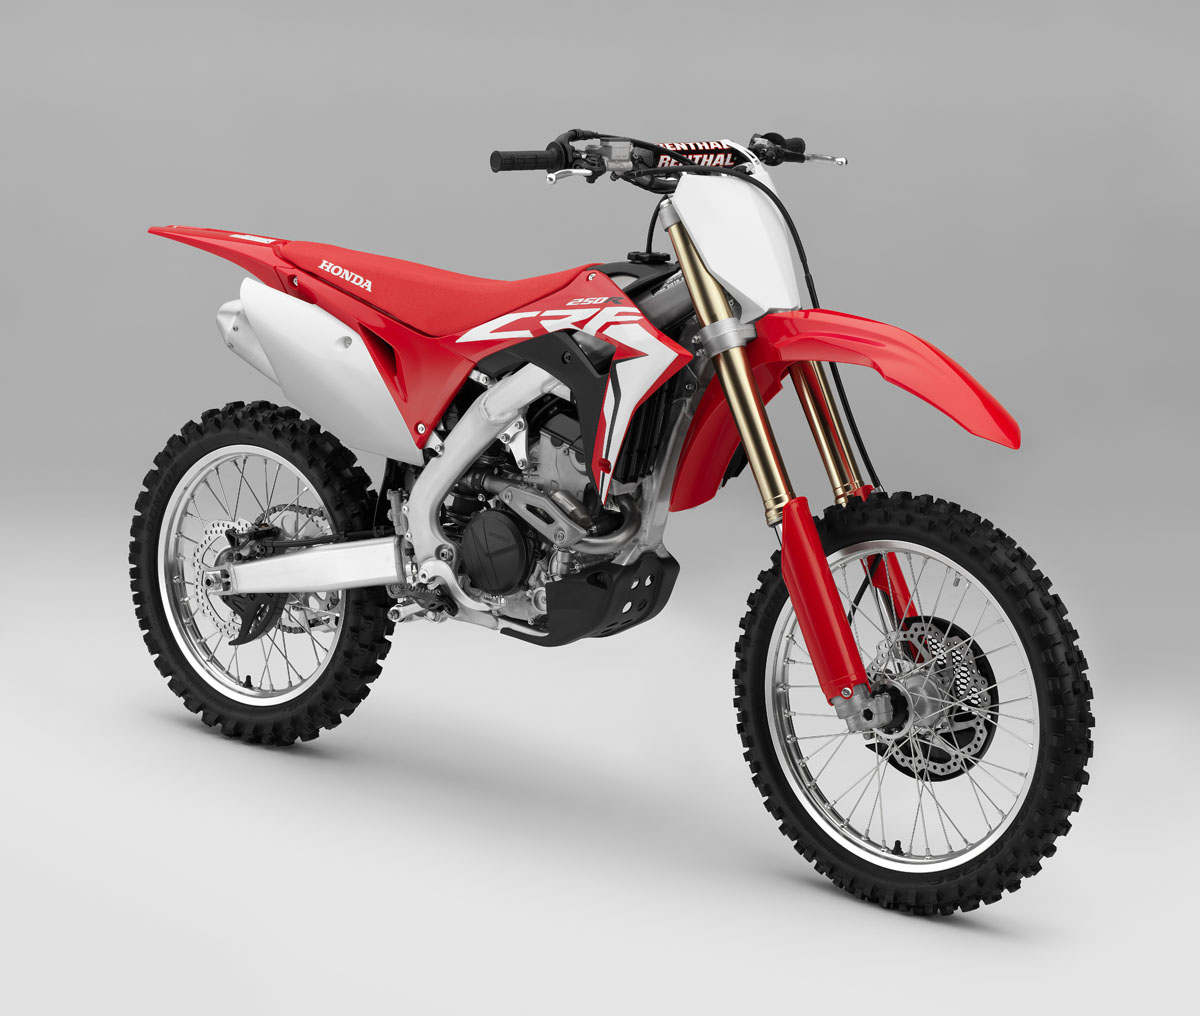 Last Sunday evening was the official release of the 2018 Honda CRF250R,  which is probably the most significant new Honda off-road bike in 10 years.